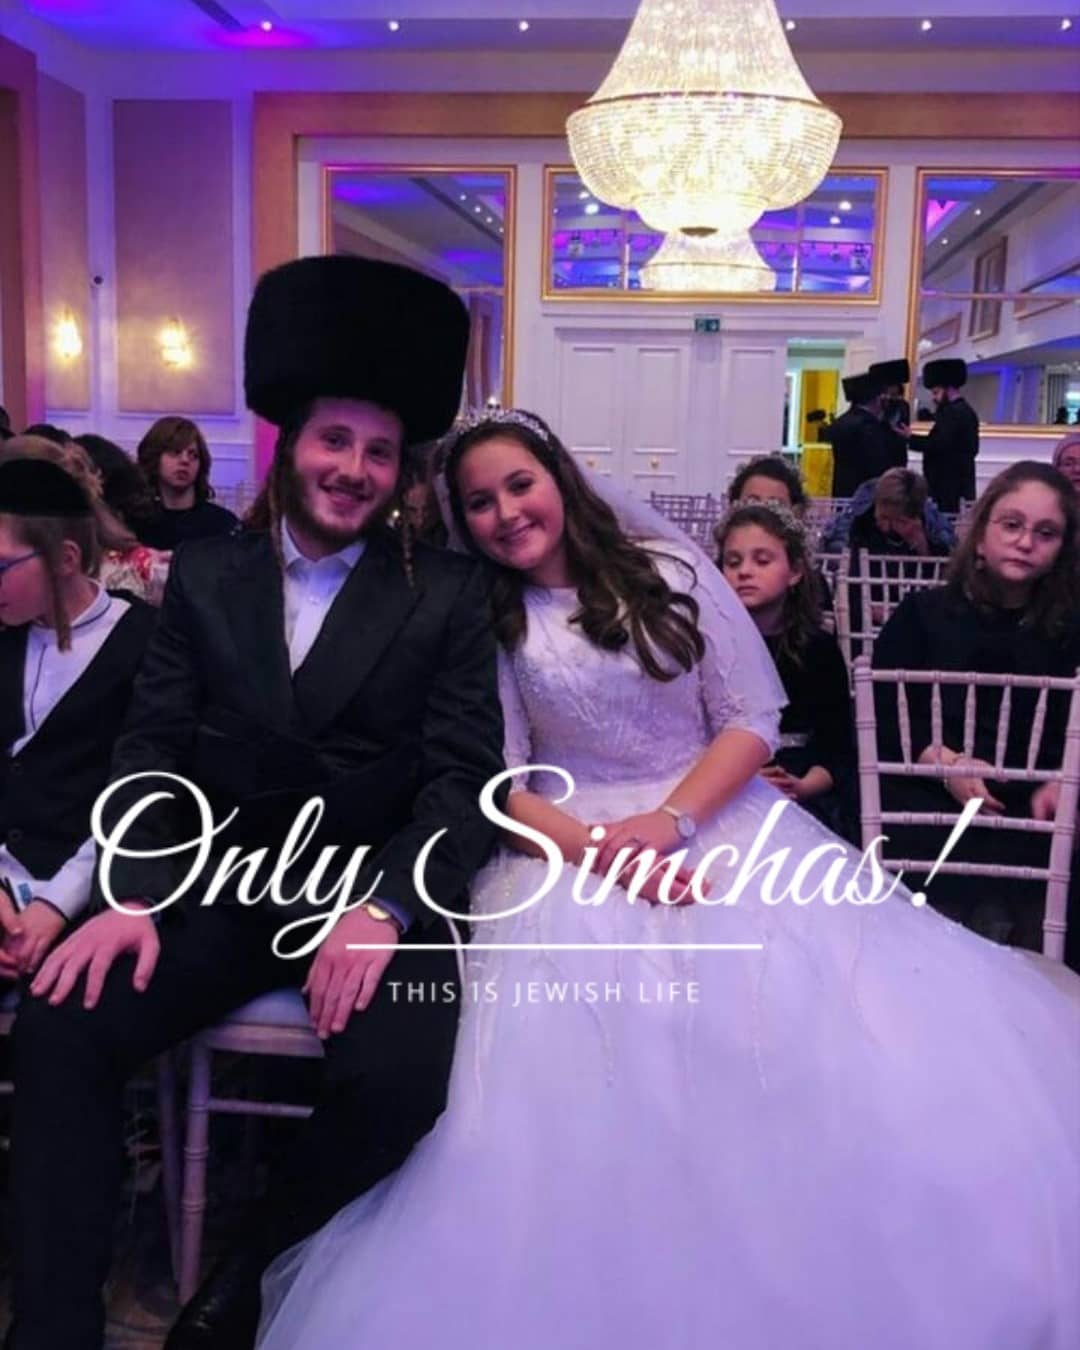 Wedding of Avrumi Weinberg (Bnie Brak) and Peri Danzinger (#London)!! #onlysimchas #Israel